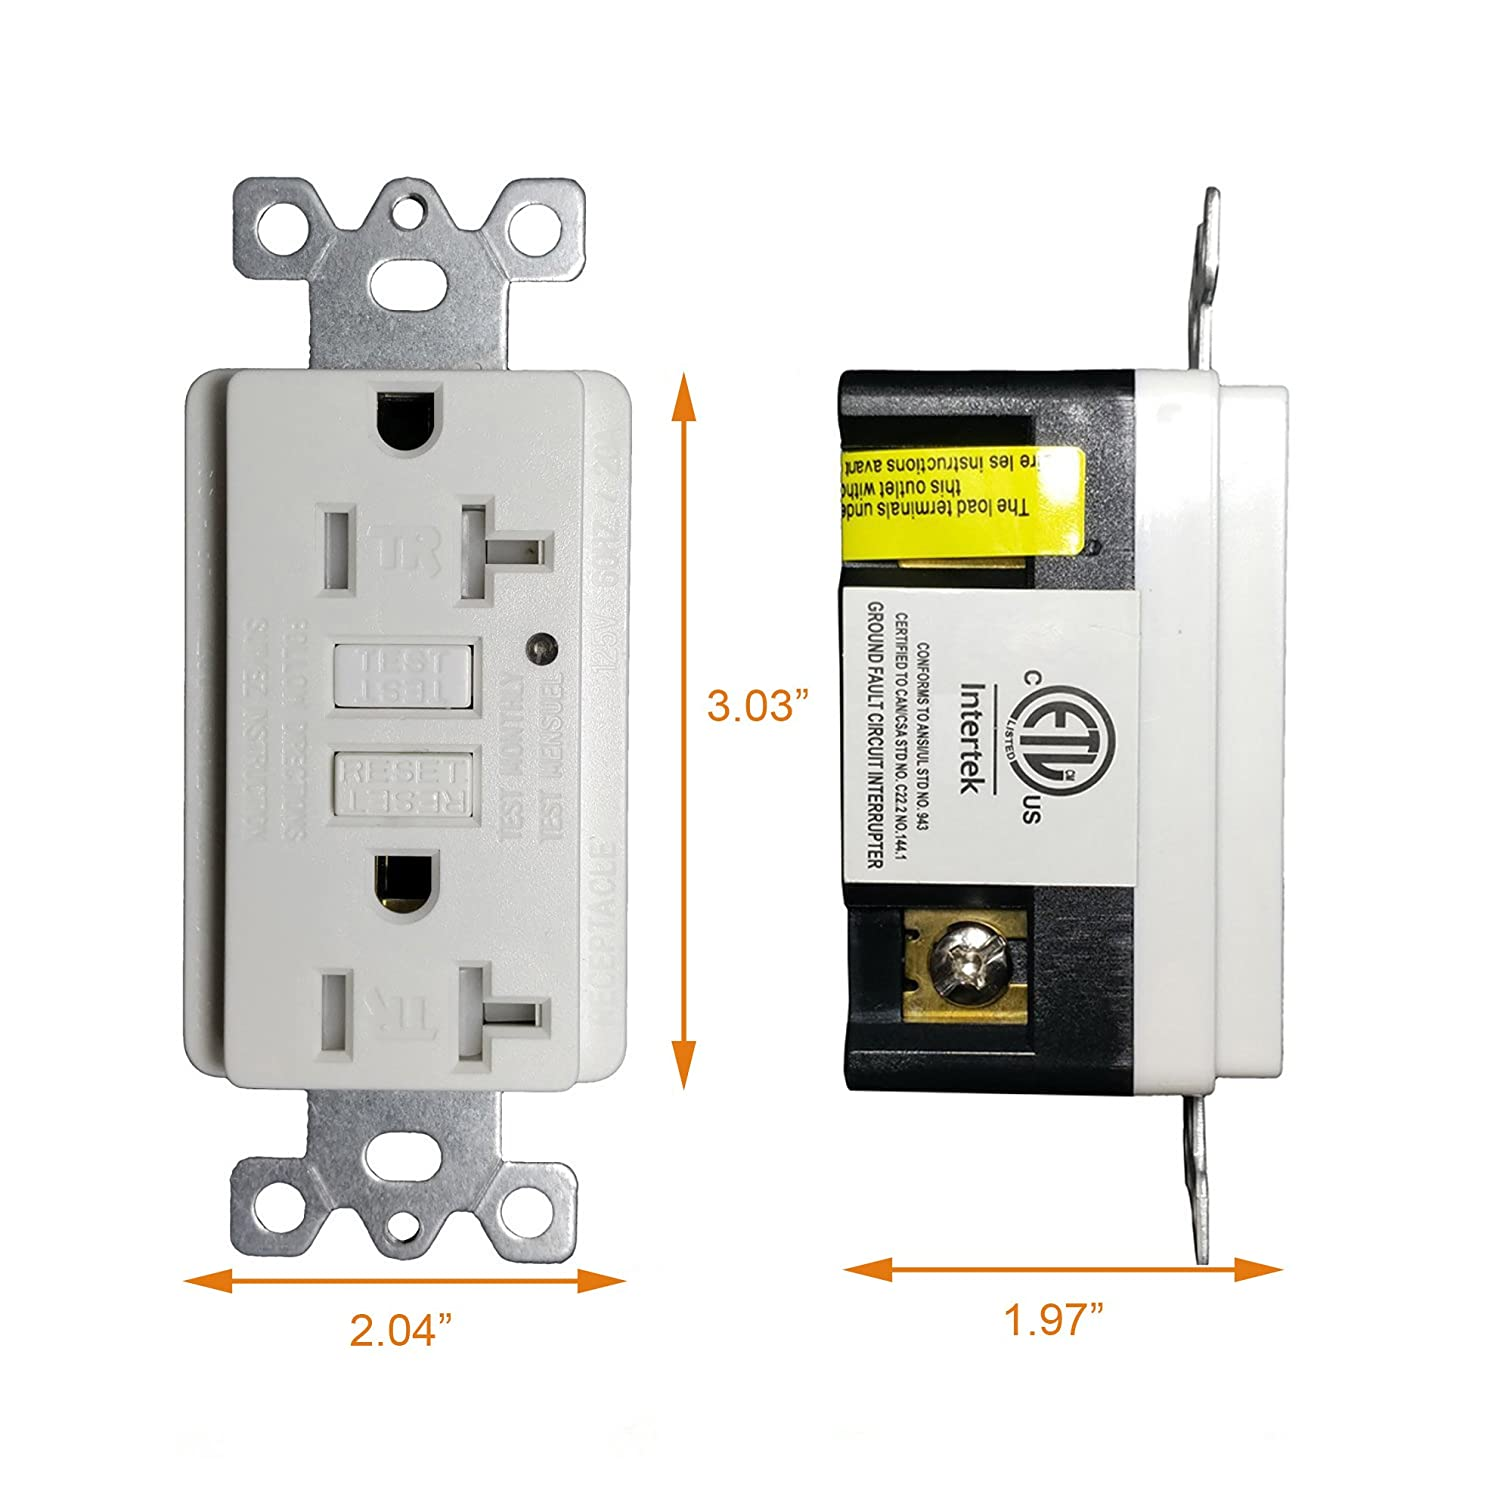 Gfci Outlet 20 Amp Tamper Resistant Receptacle With Led Indicator Breaker What Should Be Used A Or Is 15 125 Volt Wallplate And Screws